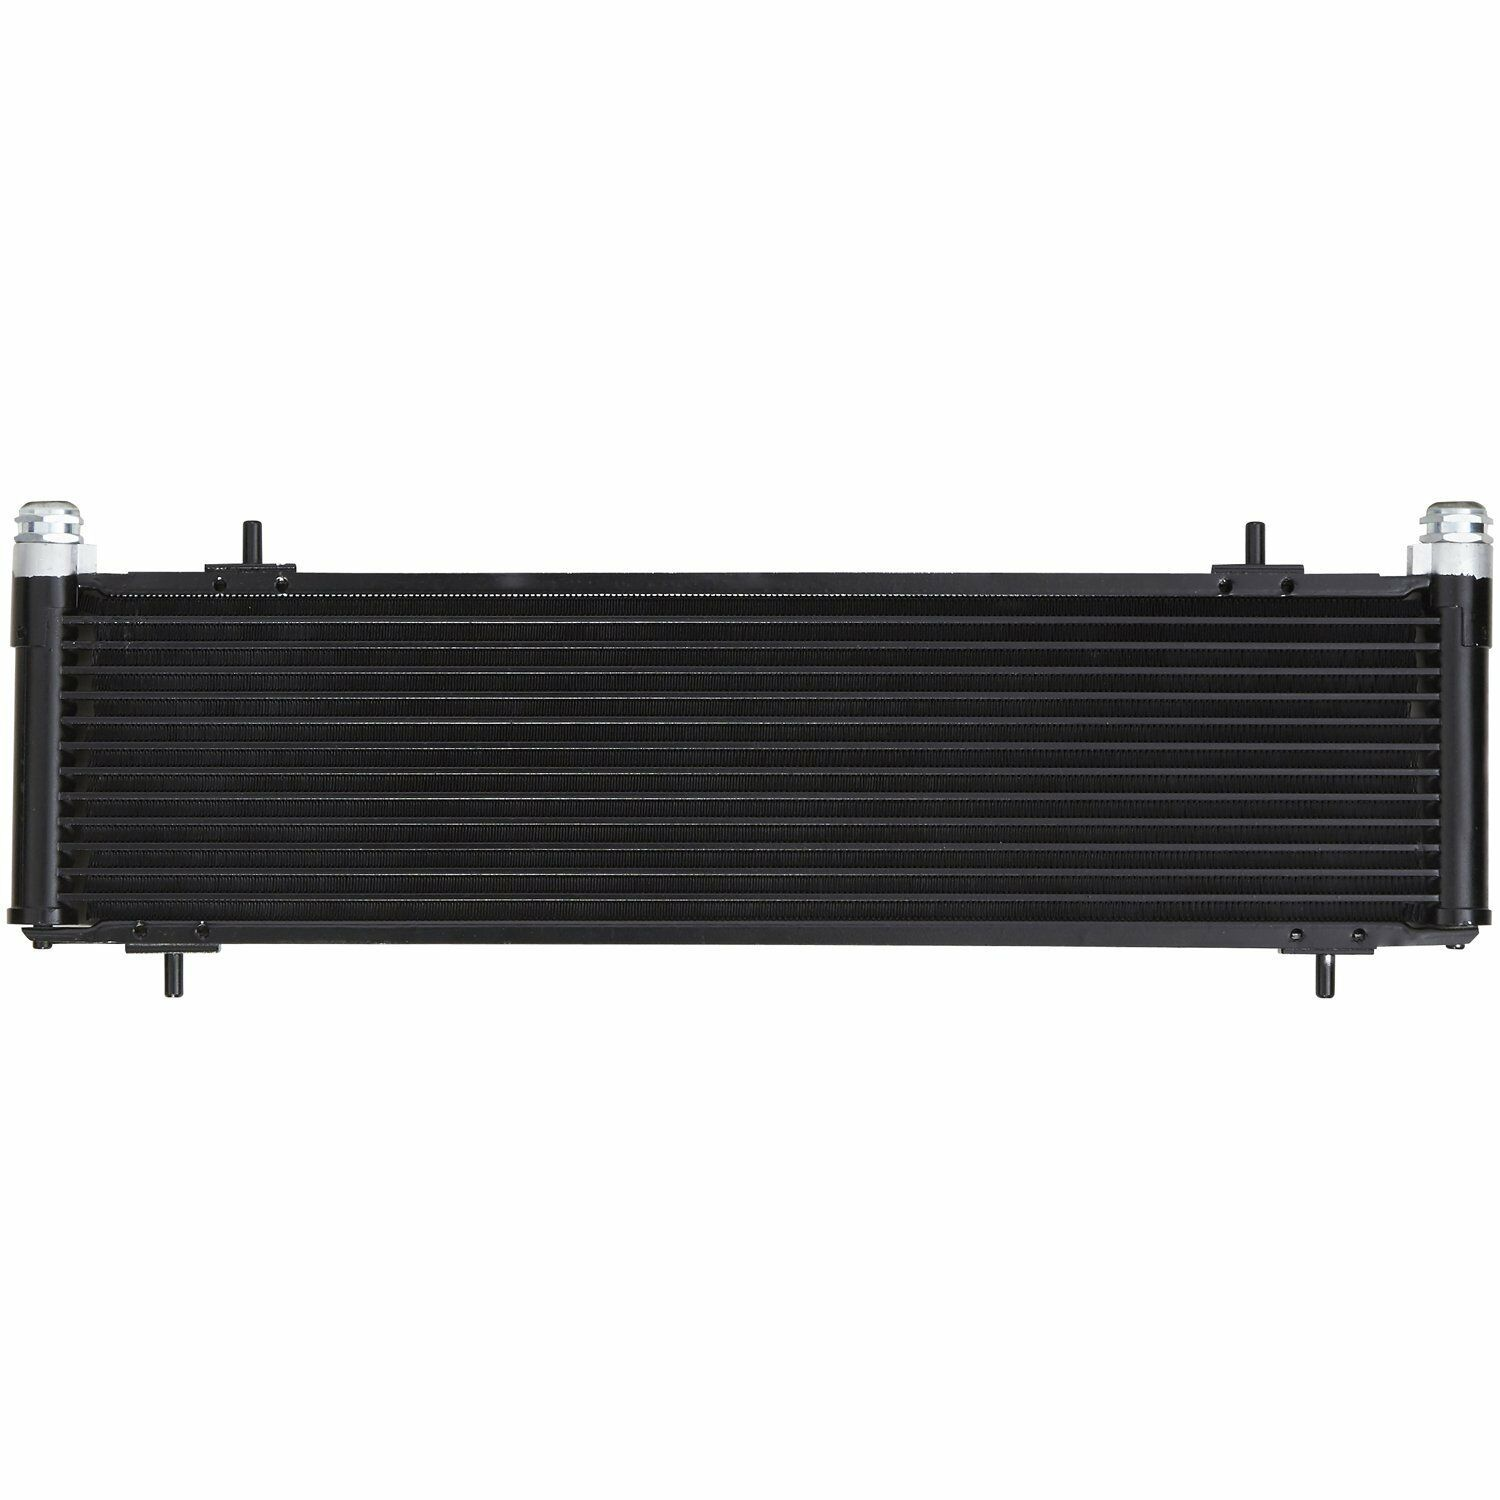 New Transmission Oil Cooler Fits 2007-2010 Ford Edge Lincoln Mkx Sport 3.5L